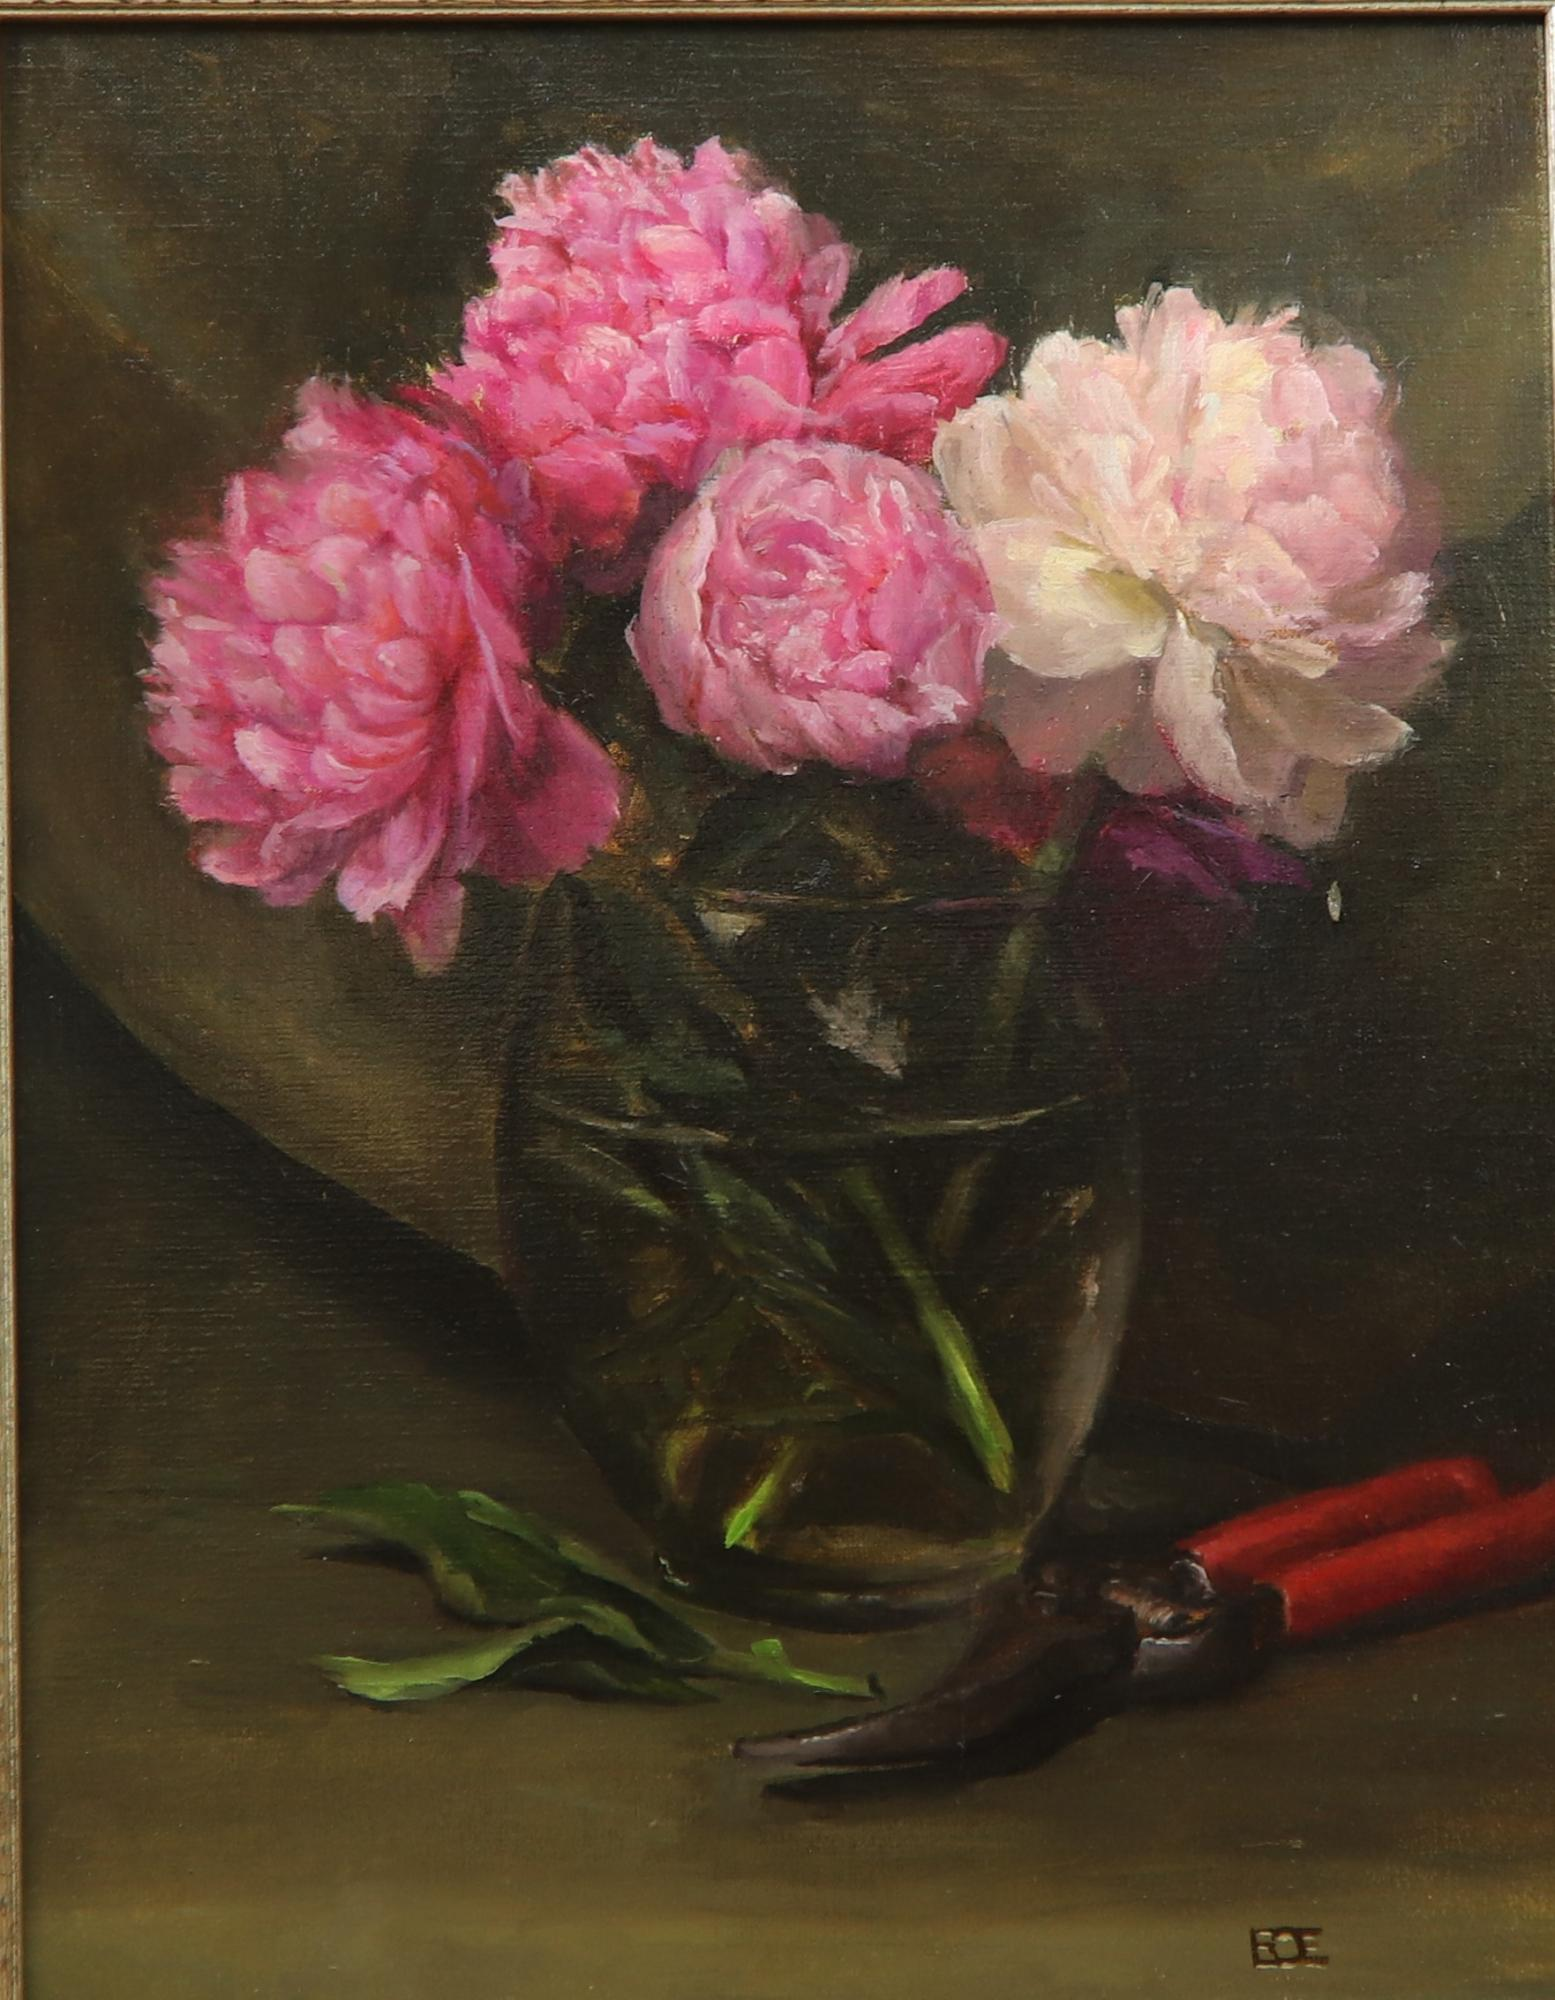 Peonies_with_Red_Cli203.jpg